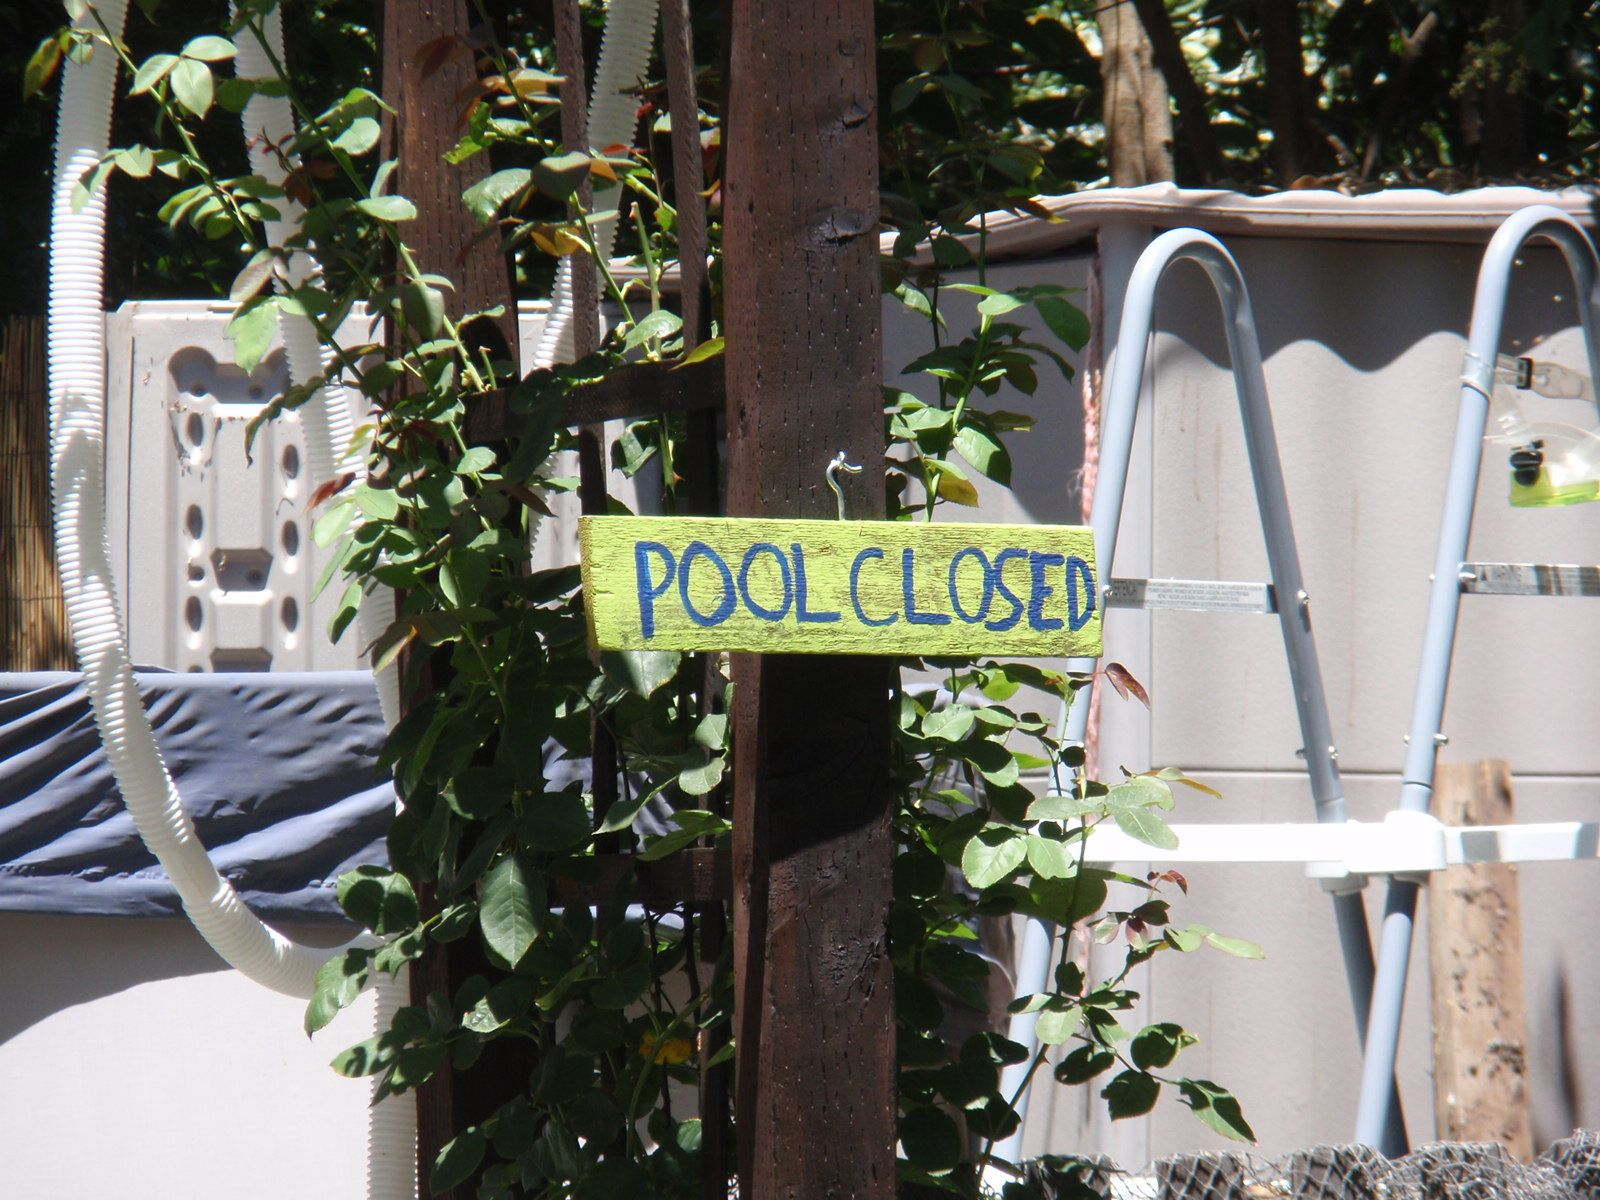 Pool Closed sign made on recycled scrap wood.. turn over for Pool open.... it's a great visual for my son with Autism to know- when swimming is available...